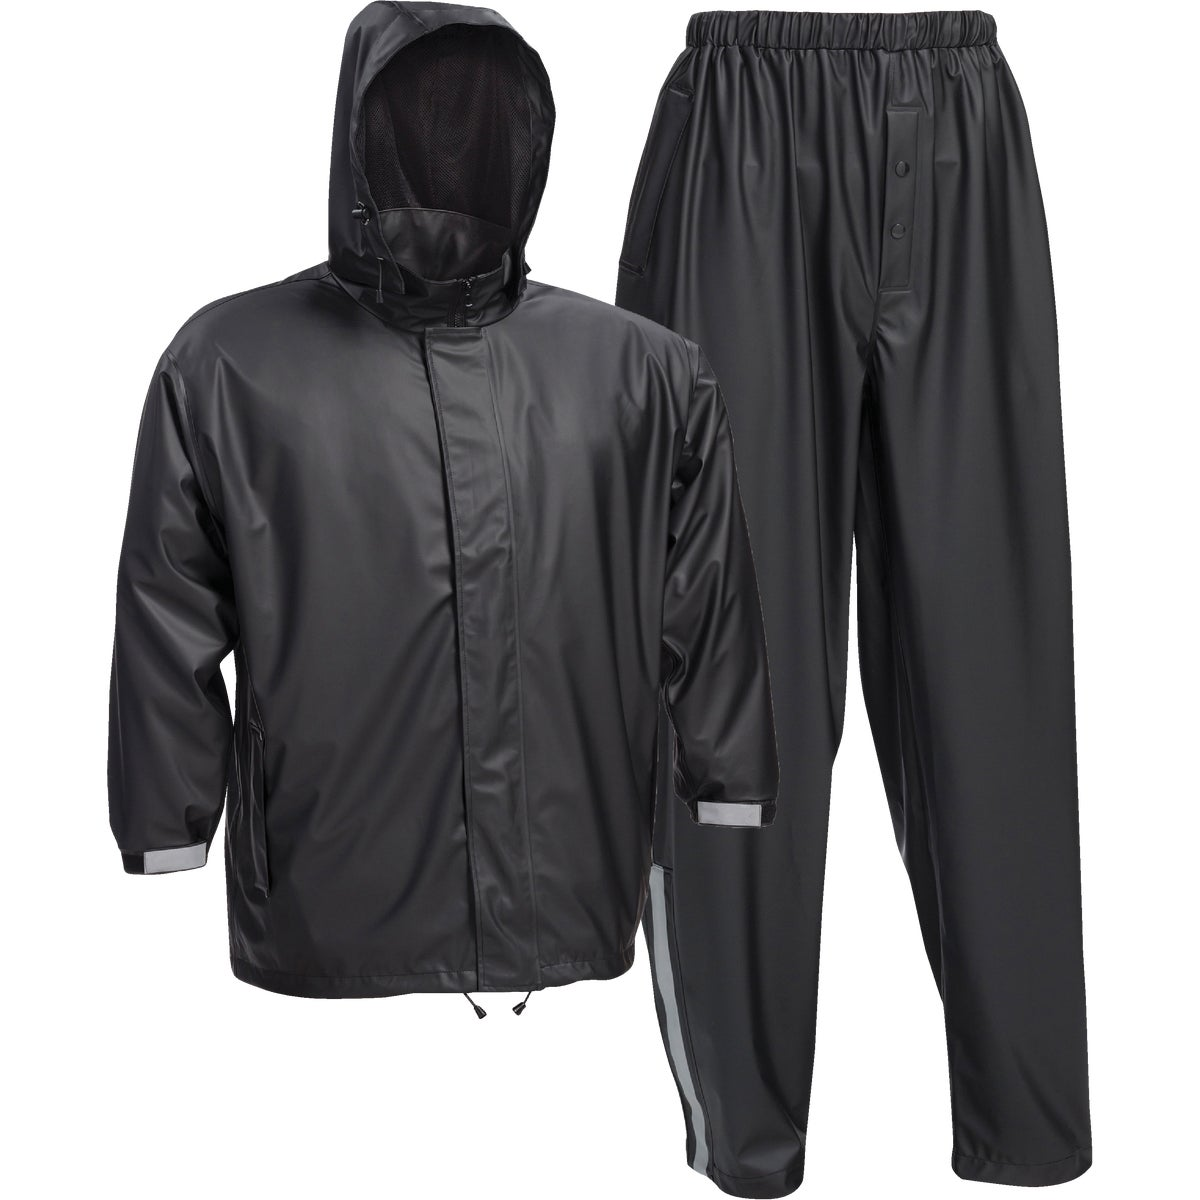 West Chester 3-Piece Black Rain Suit, 44520/XL